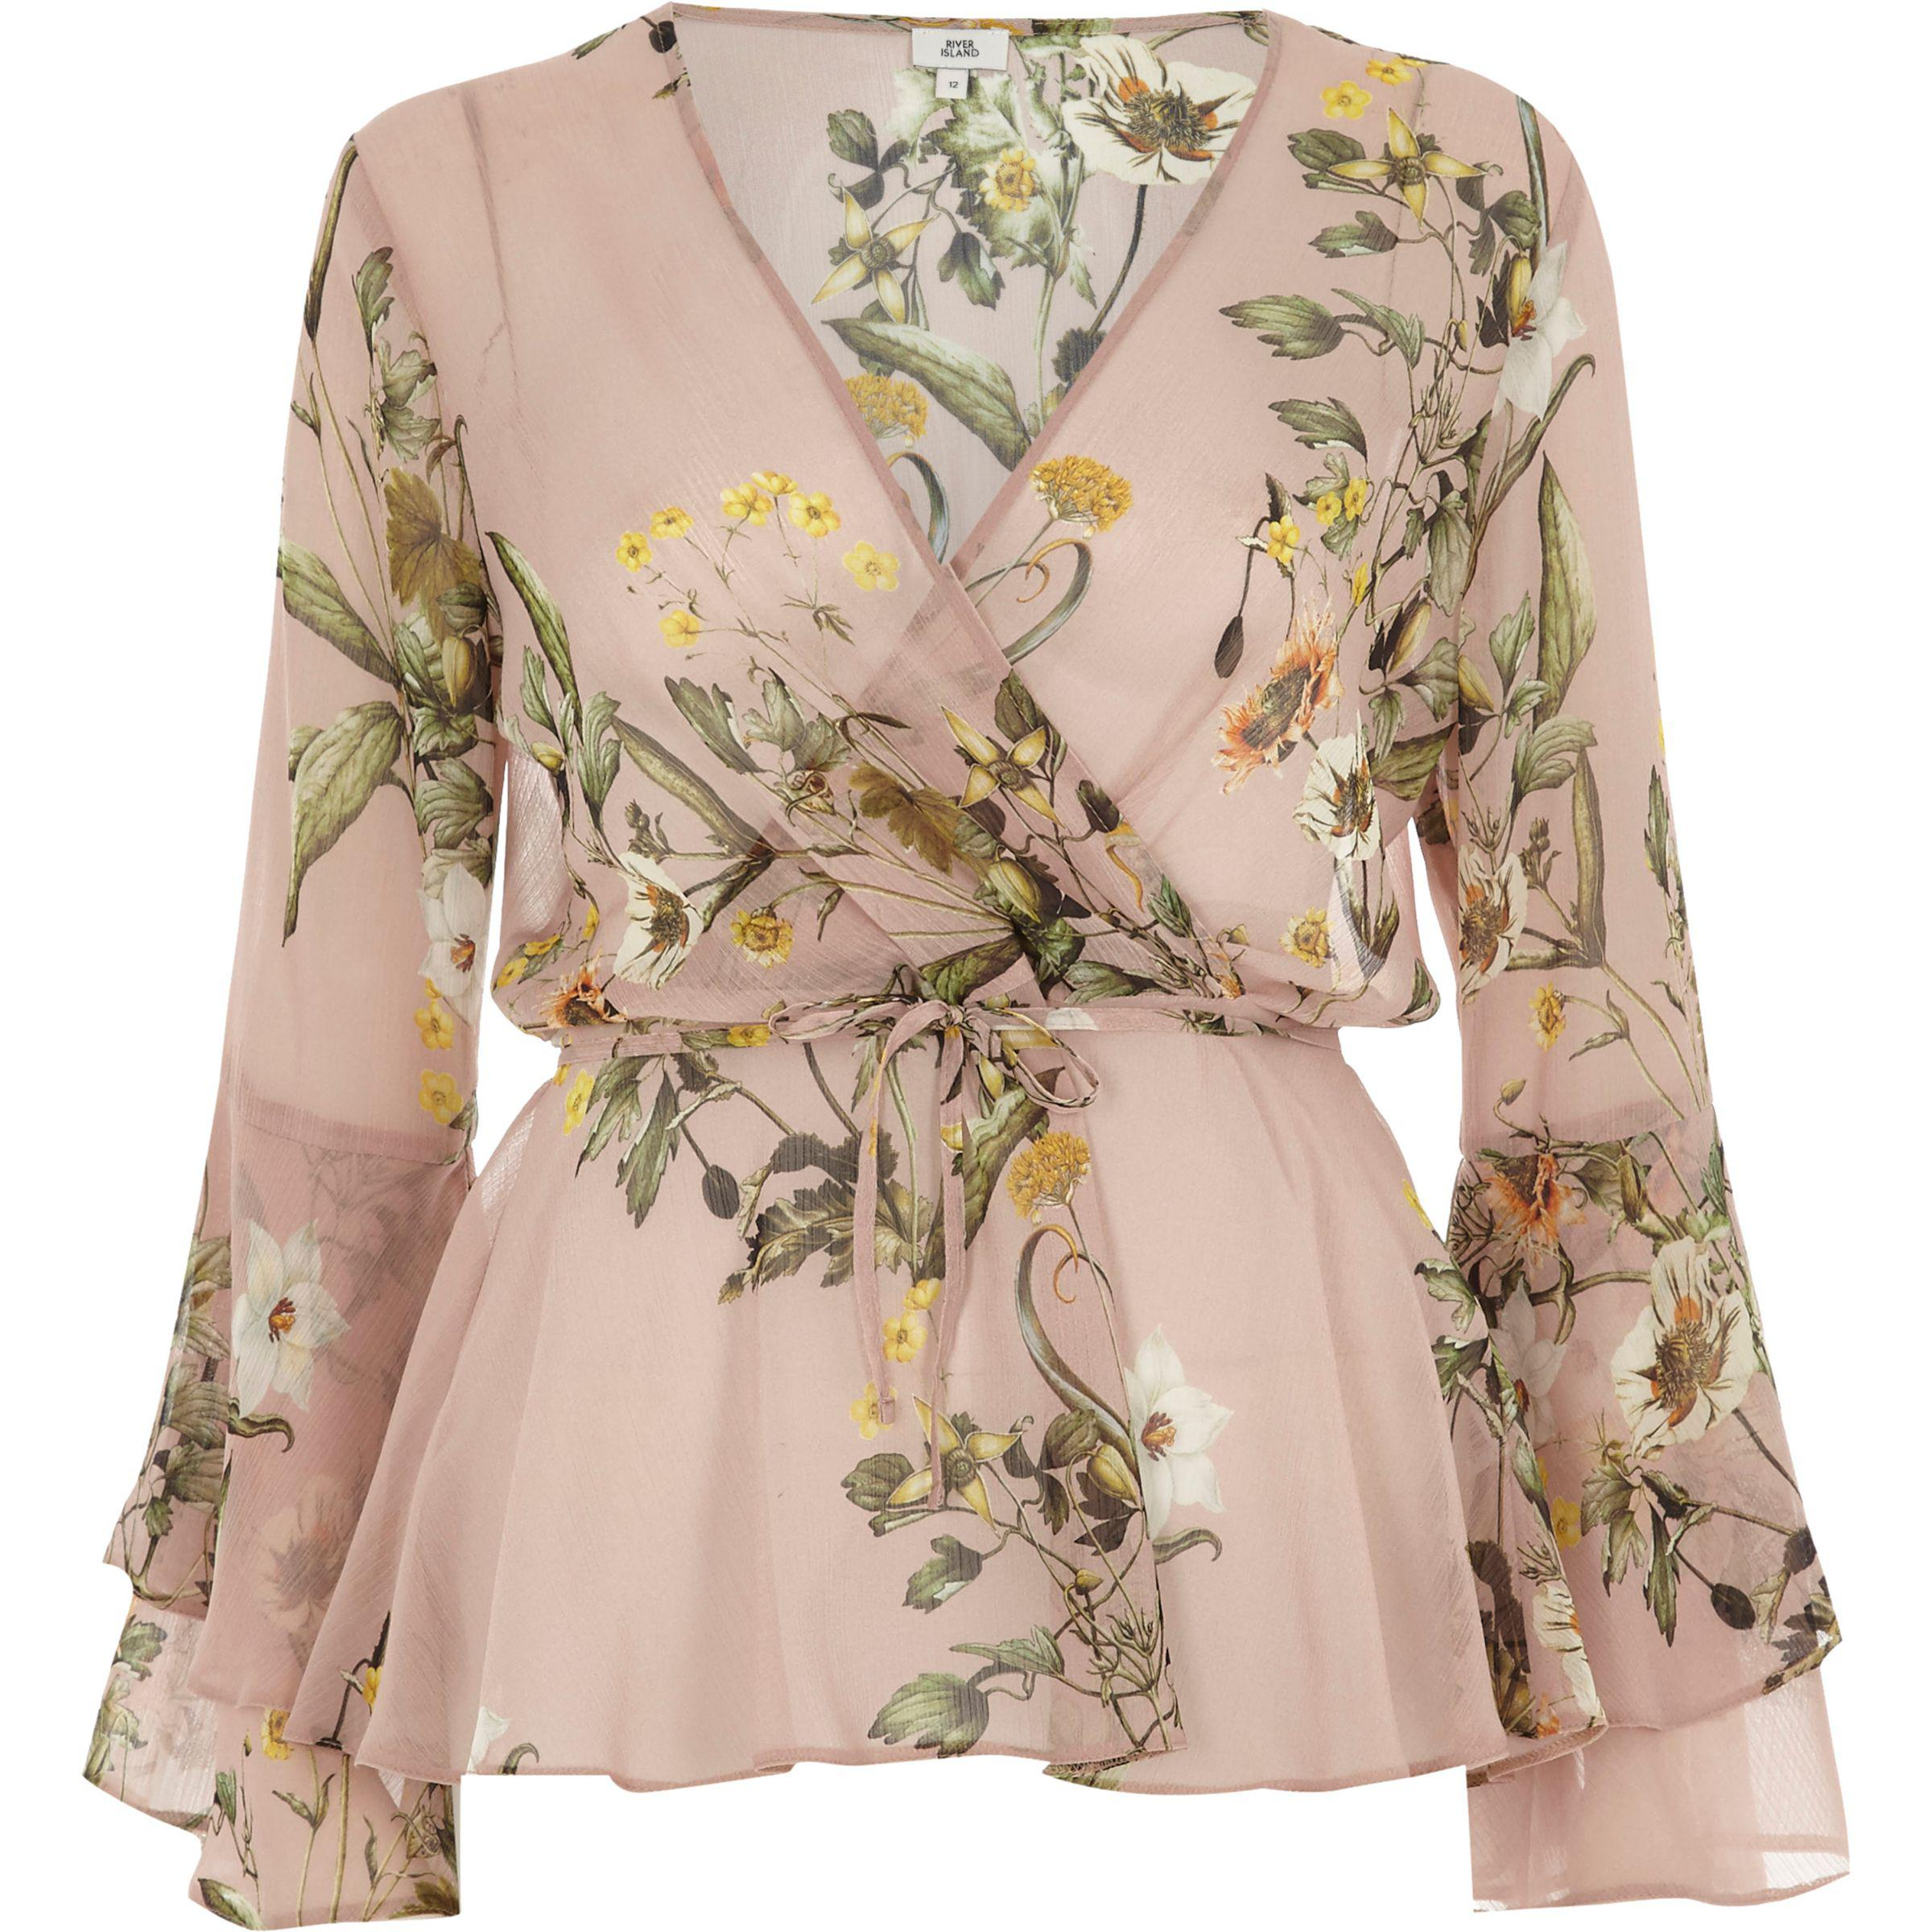 345467aca4e685 River Island Pink Floral Wrap Frill Sleeve Blouse in Pink - Lyst